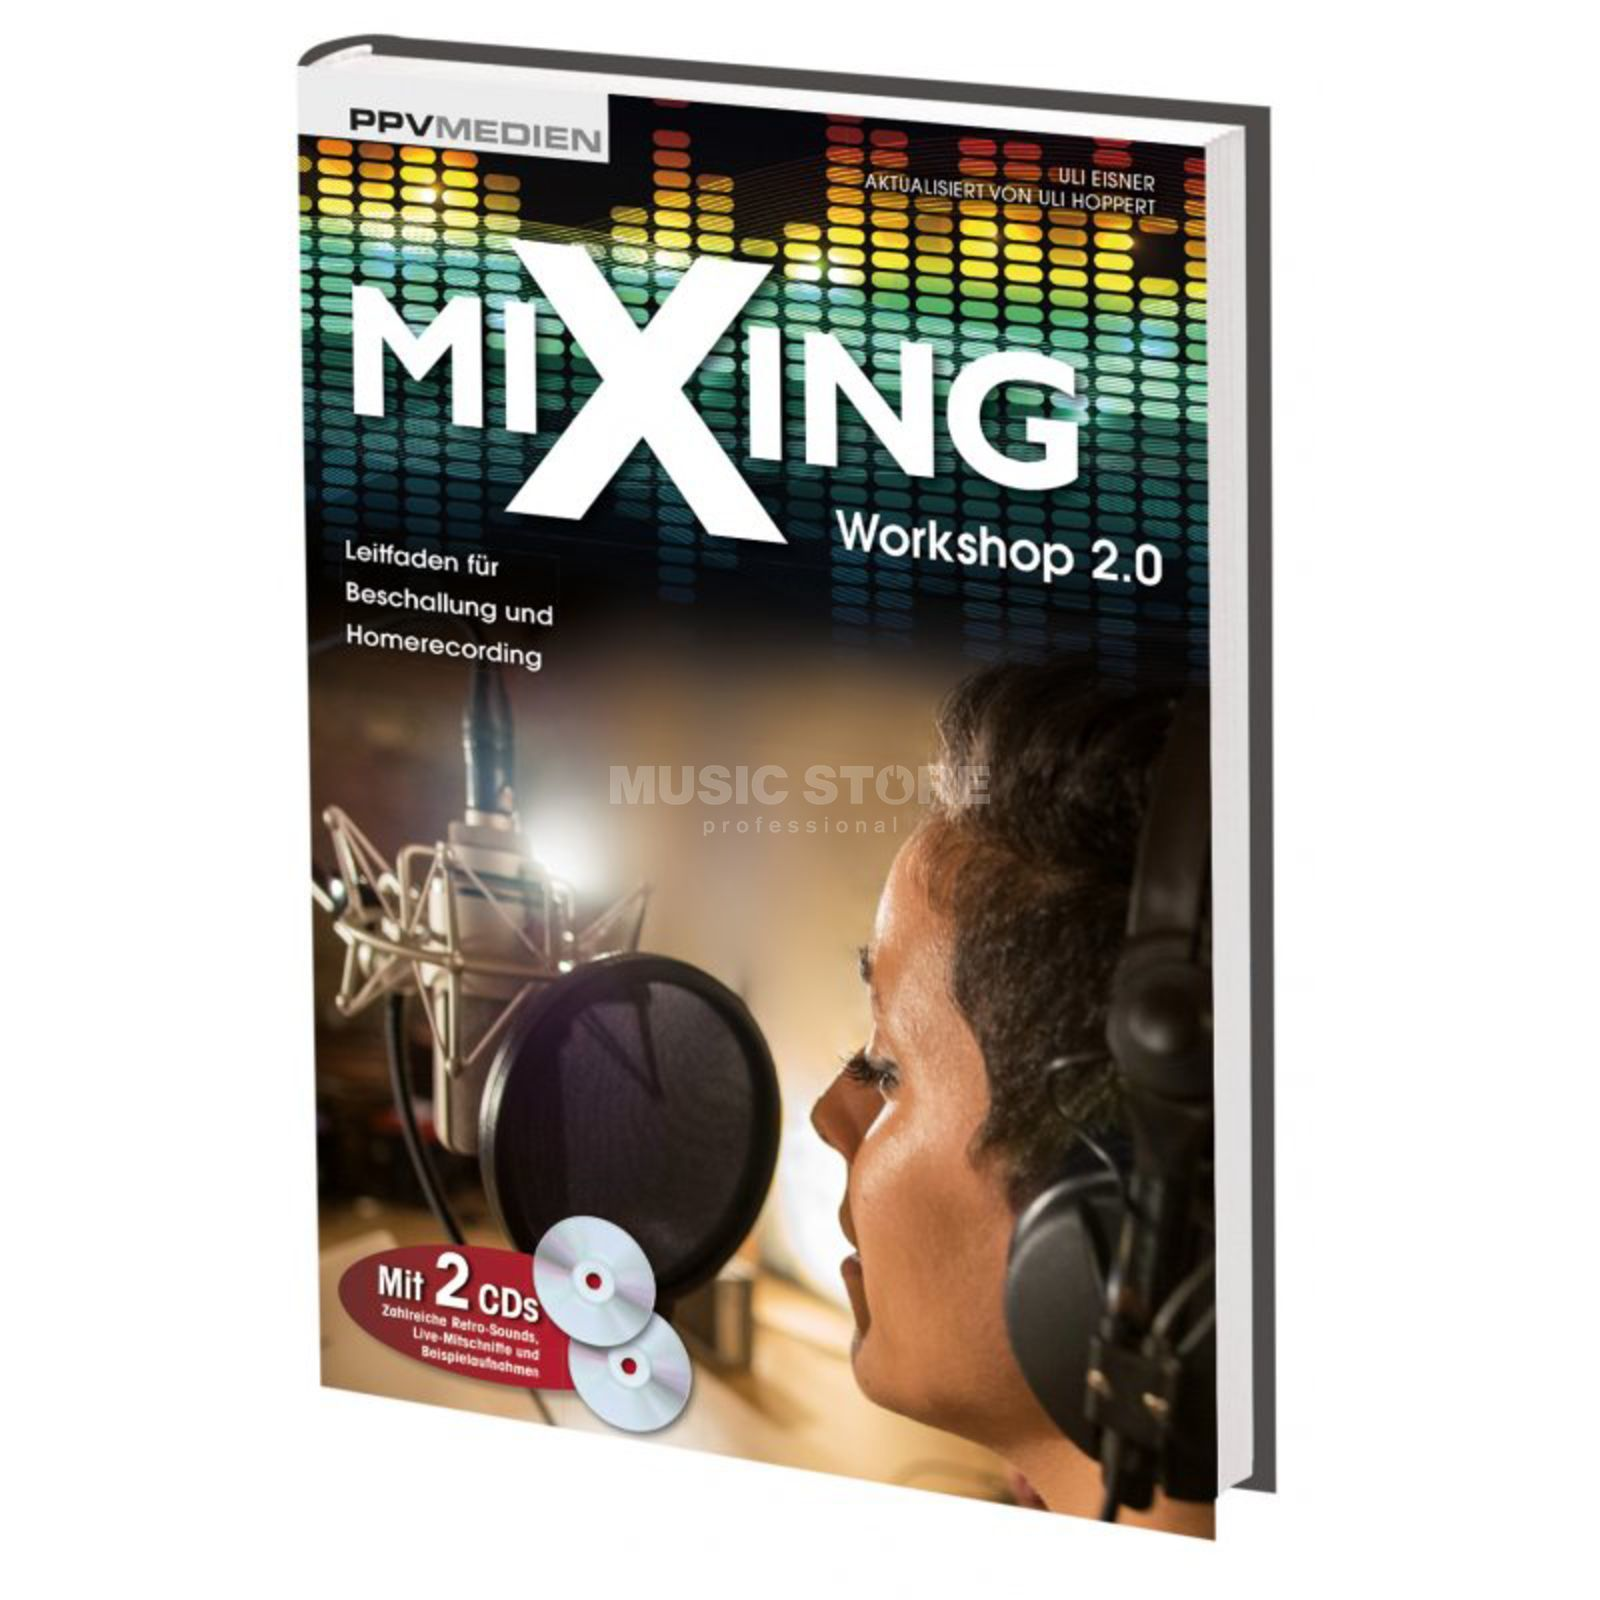 PPV Medien Mixing Workshop 2.0 Uli Eisner, Buch en 2 CDs Productafbeelding